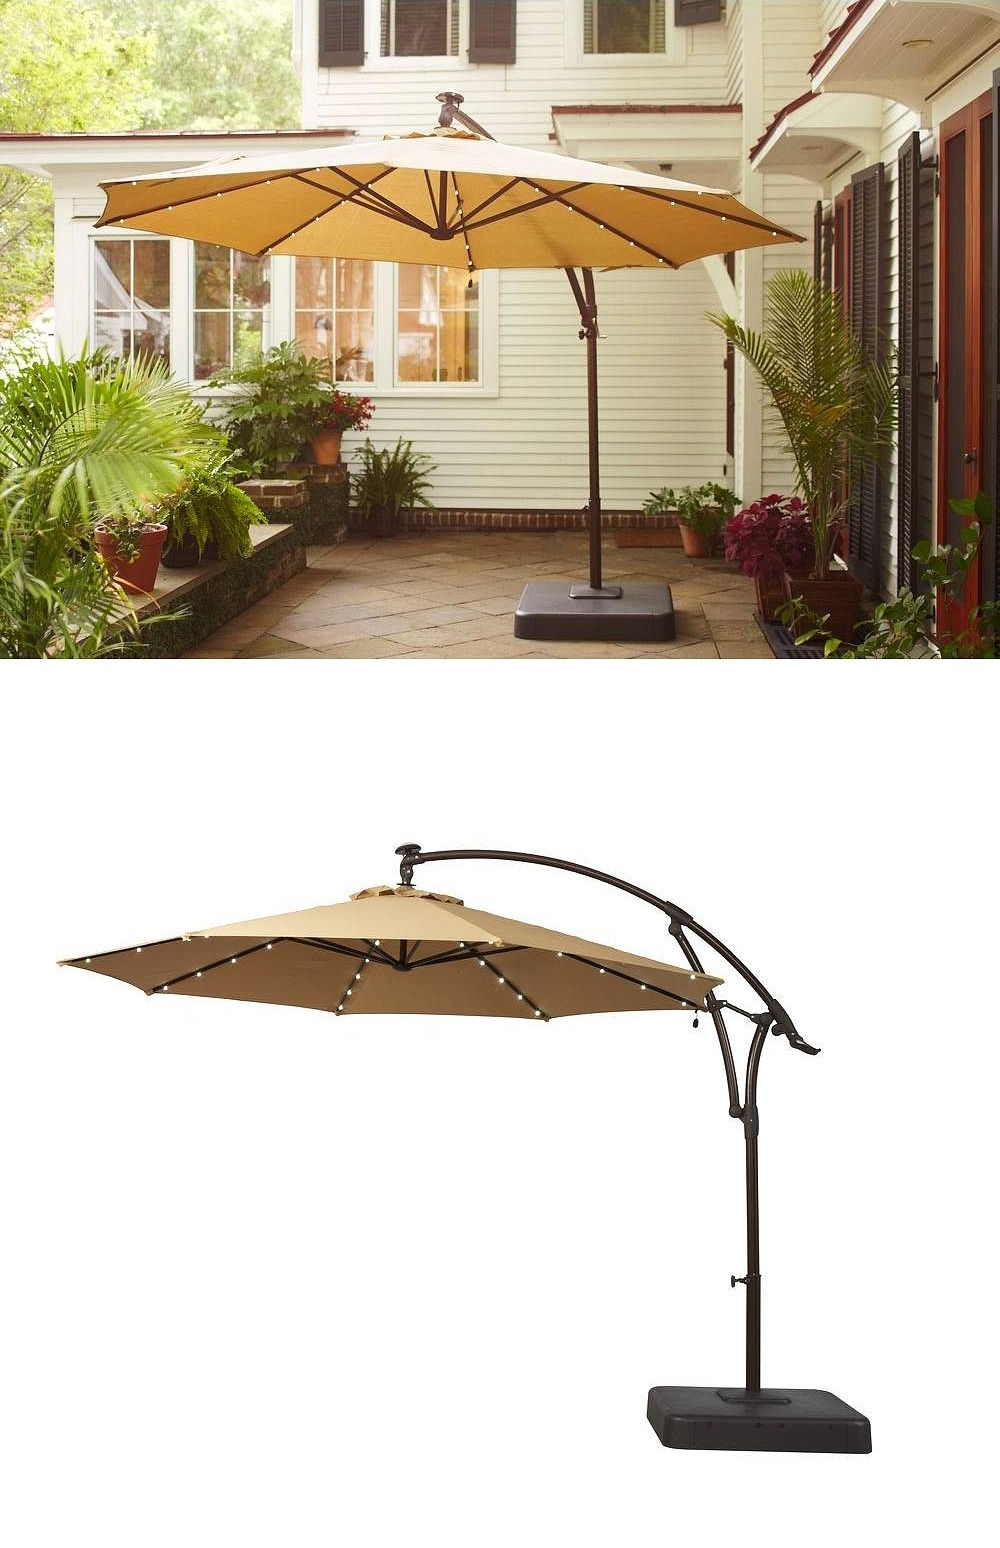 There's Something Special About This Patio Umbrella: It Has Small Within Newest Sunbrella Patio Umbrellas With Solar Lights (View 14 of 20)